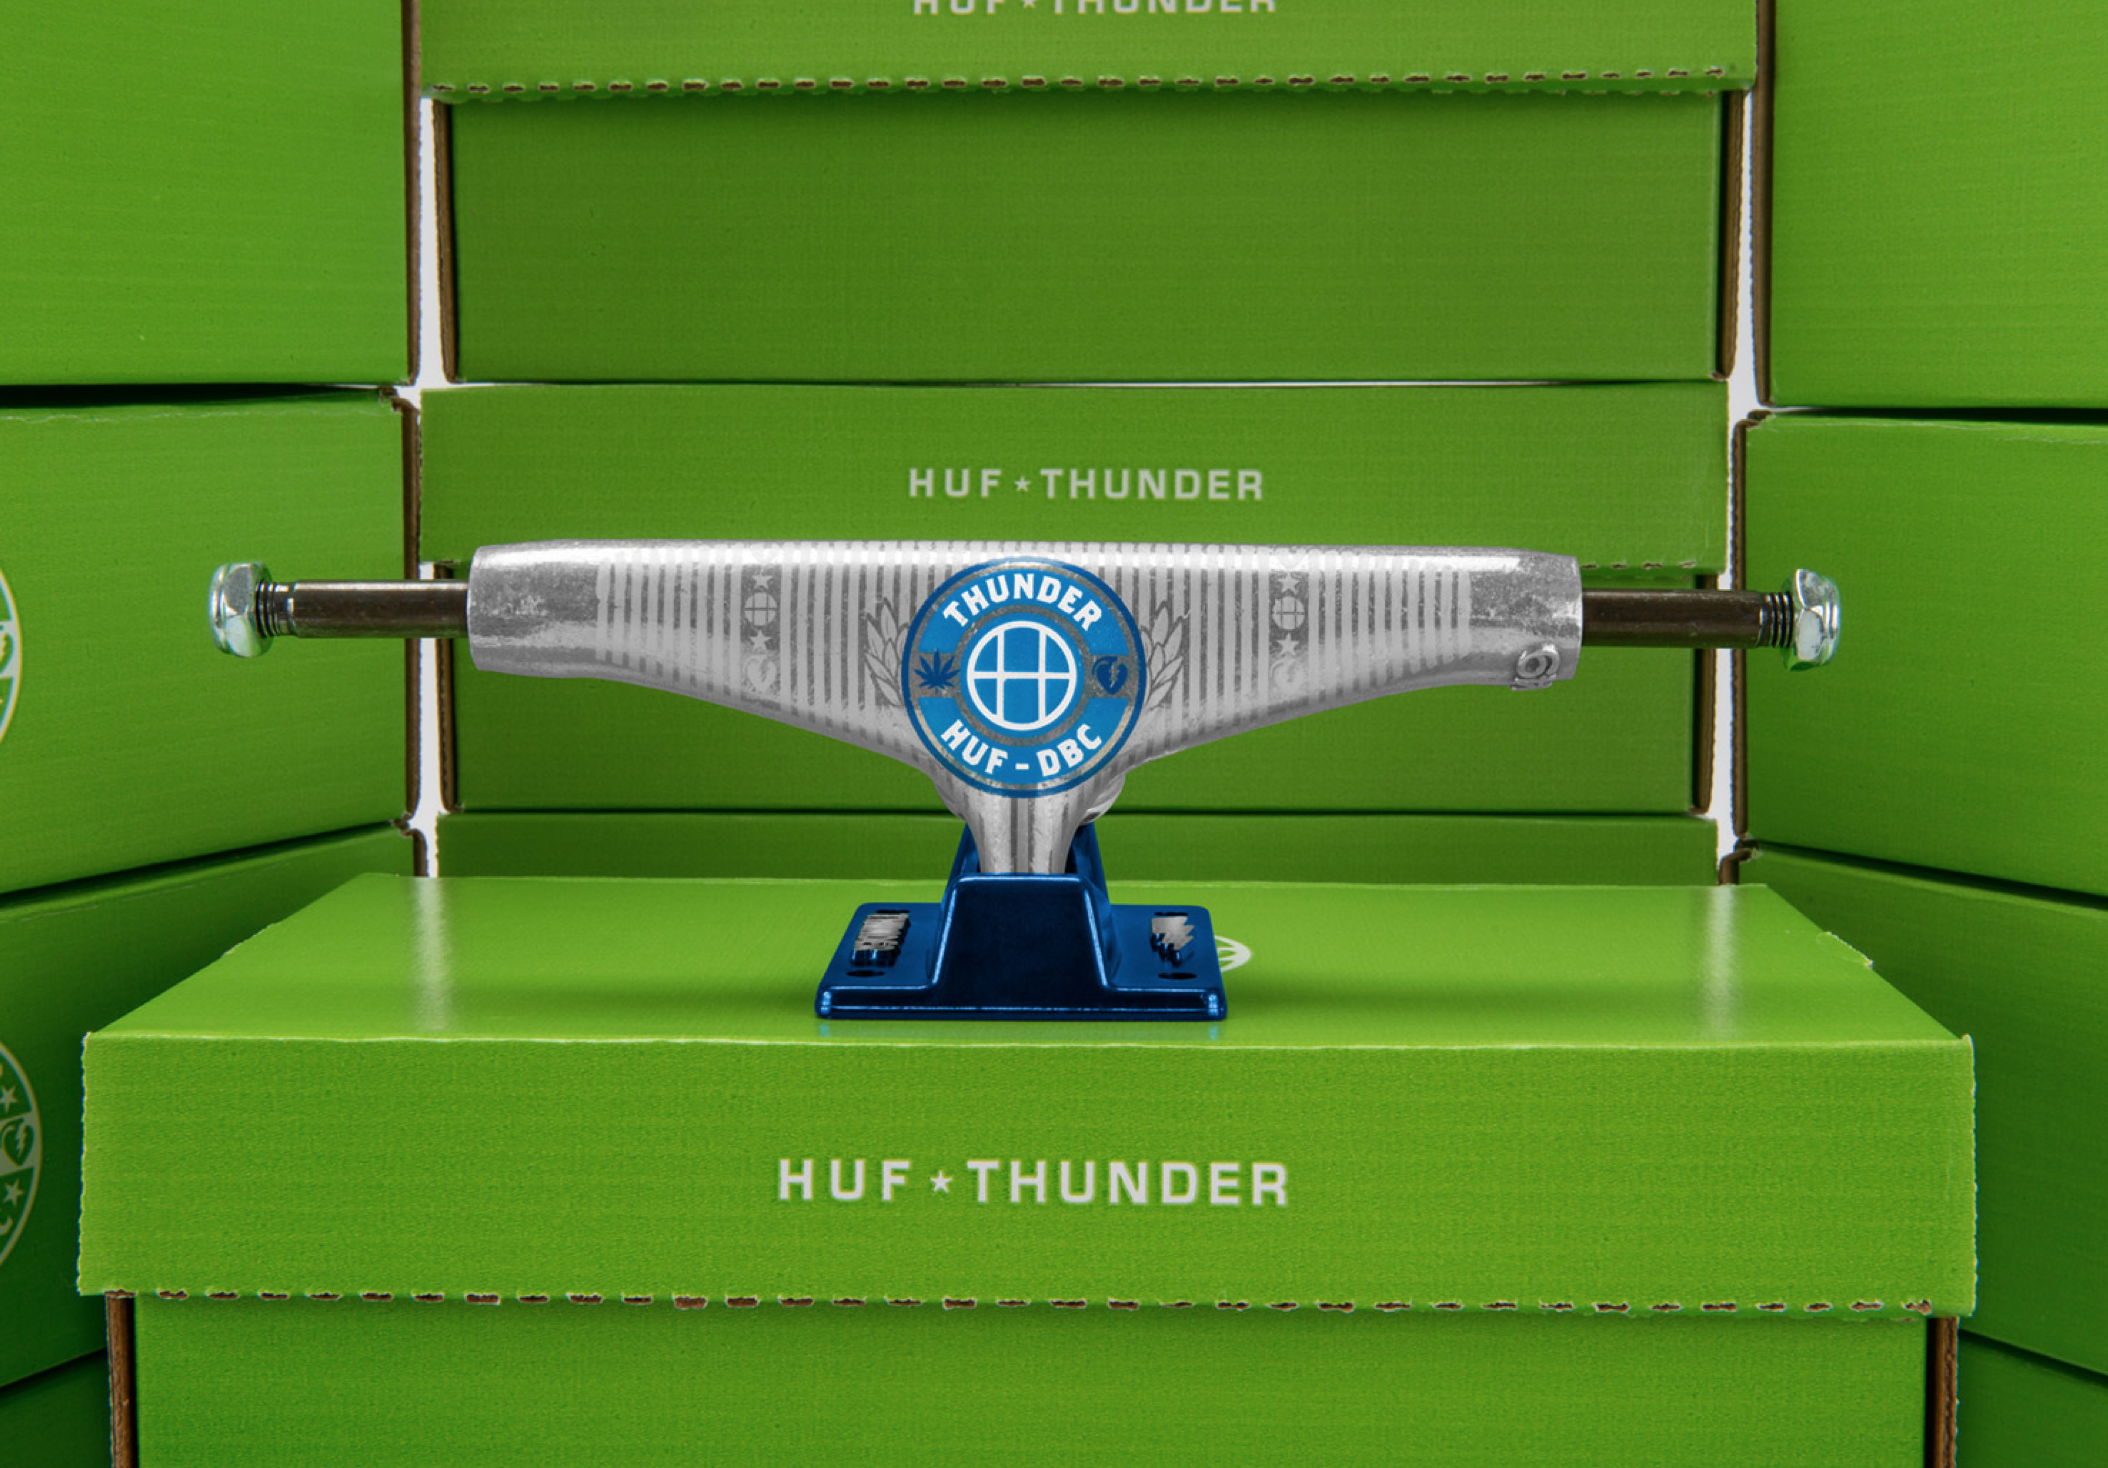 huf_thunder_trucks